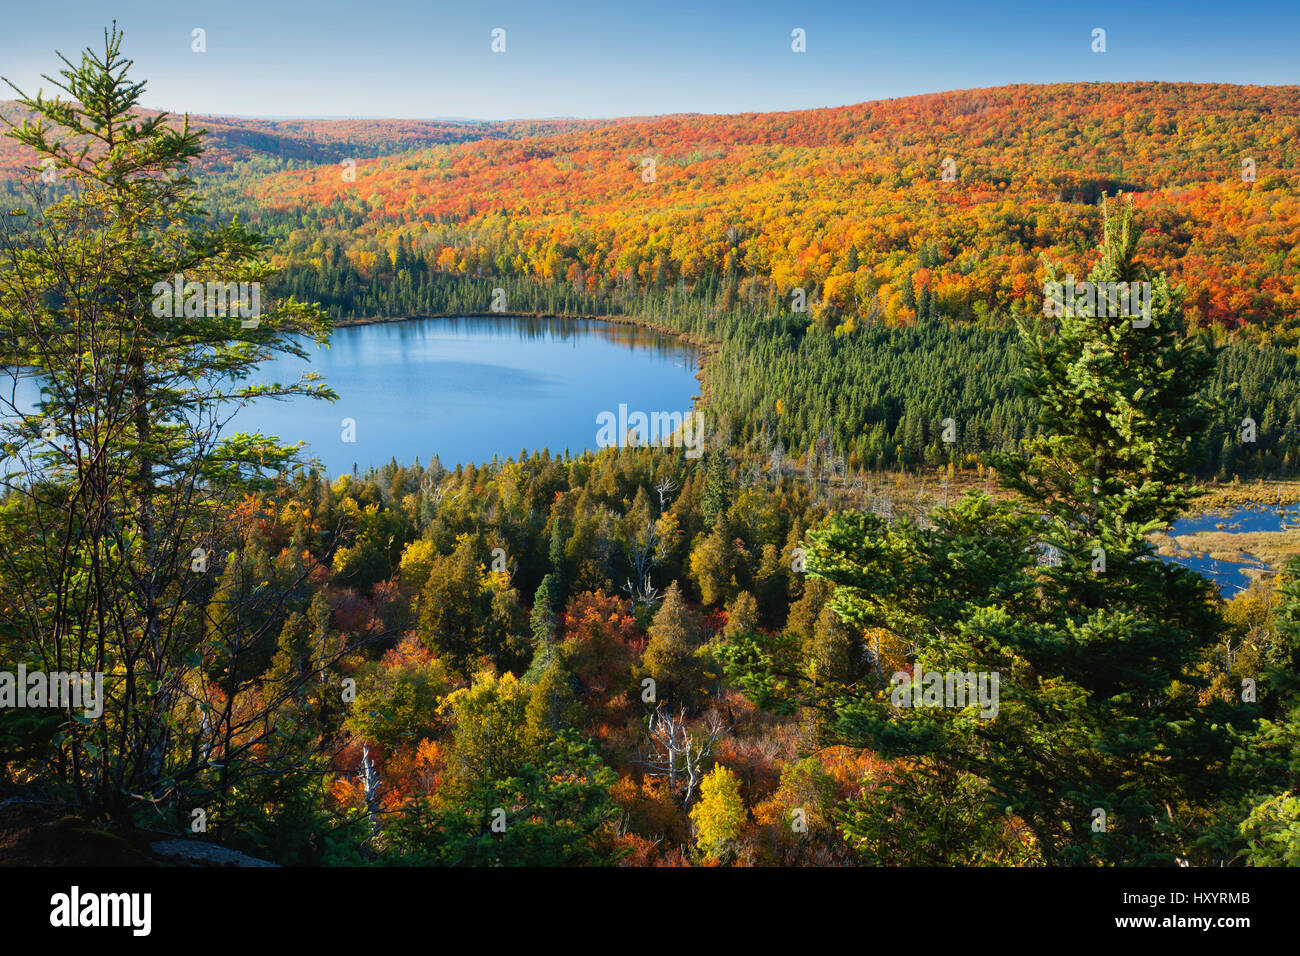 Lake Oberg in northern Minnesota surrounded by blazing autumn color - Stock Image